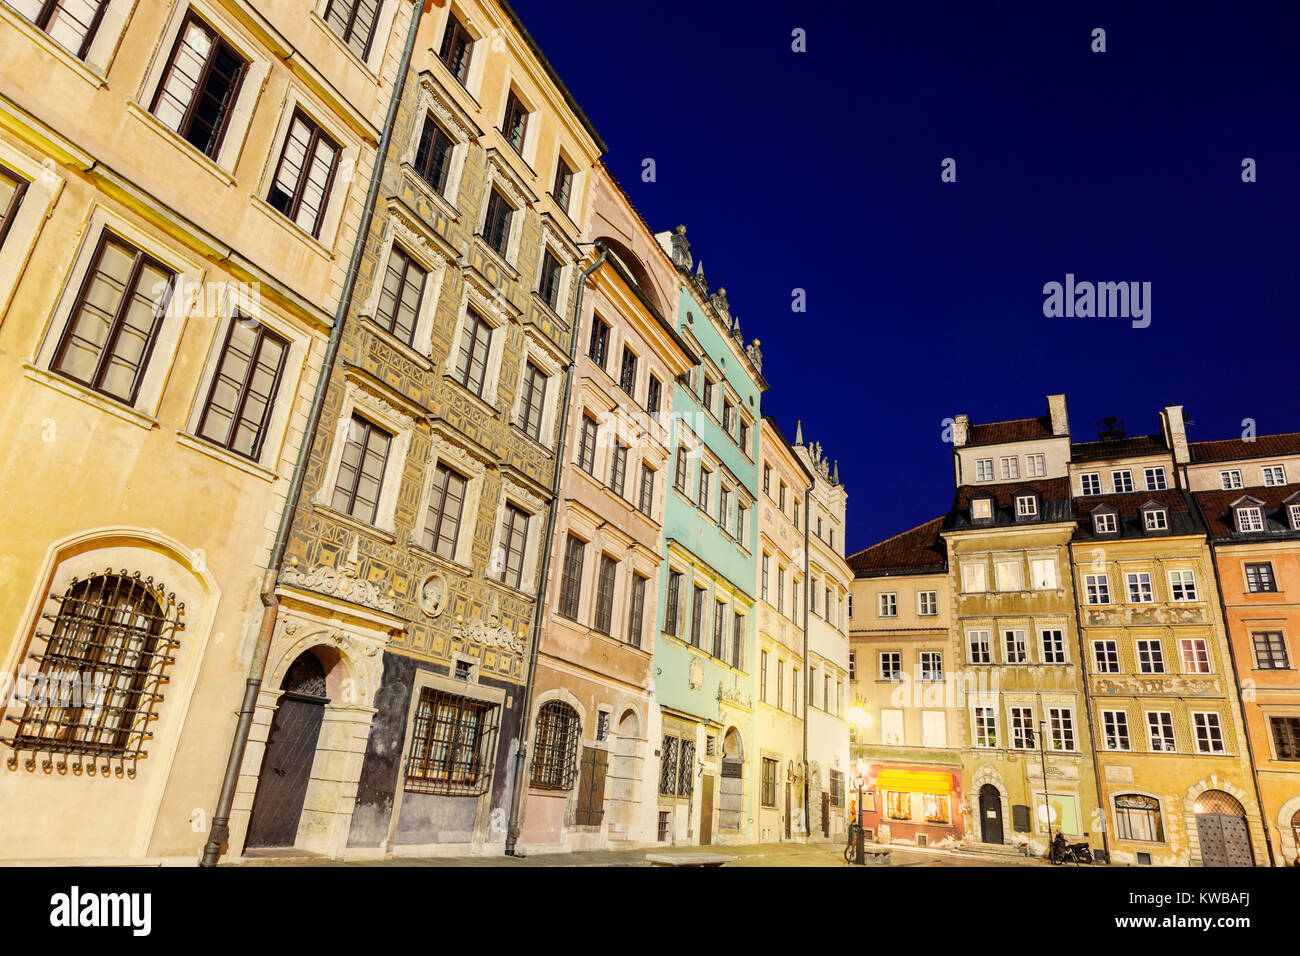 Market Place Old Town evening time. Warsaw, Poland - Stock Image